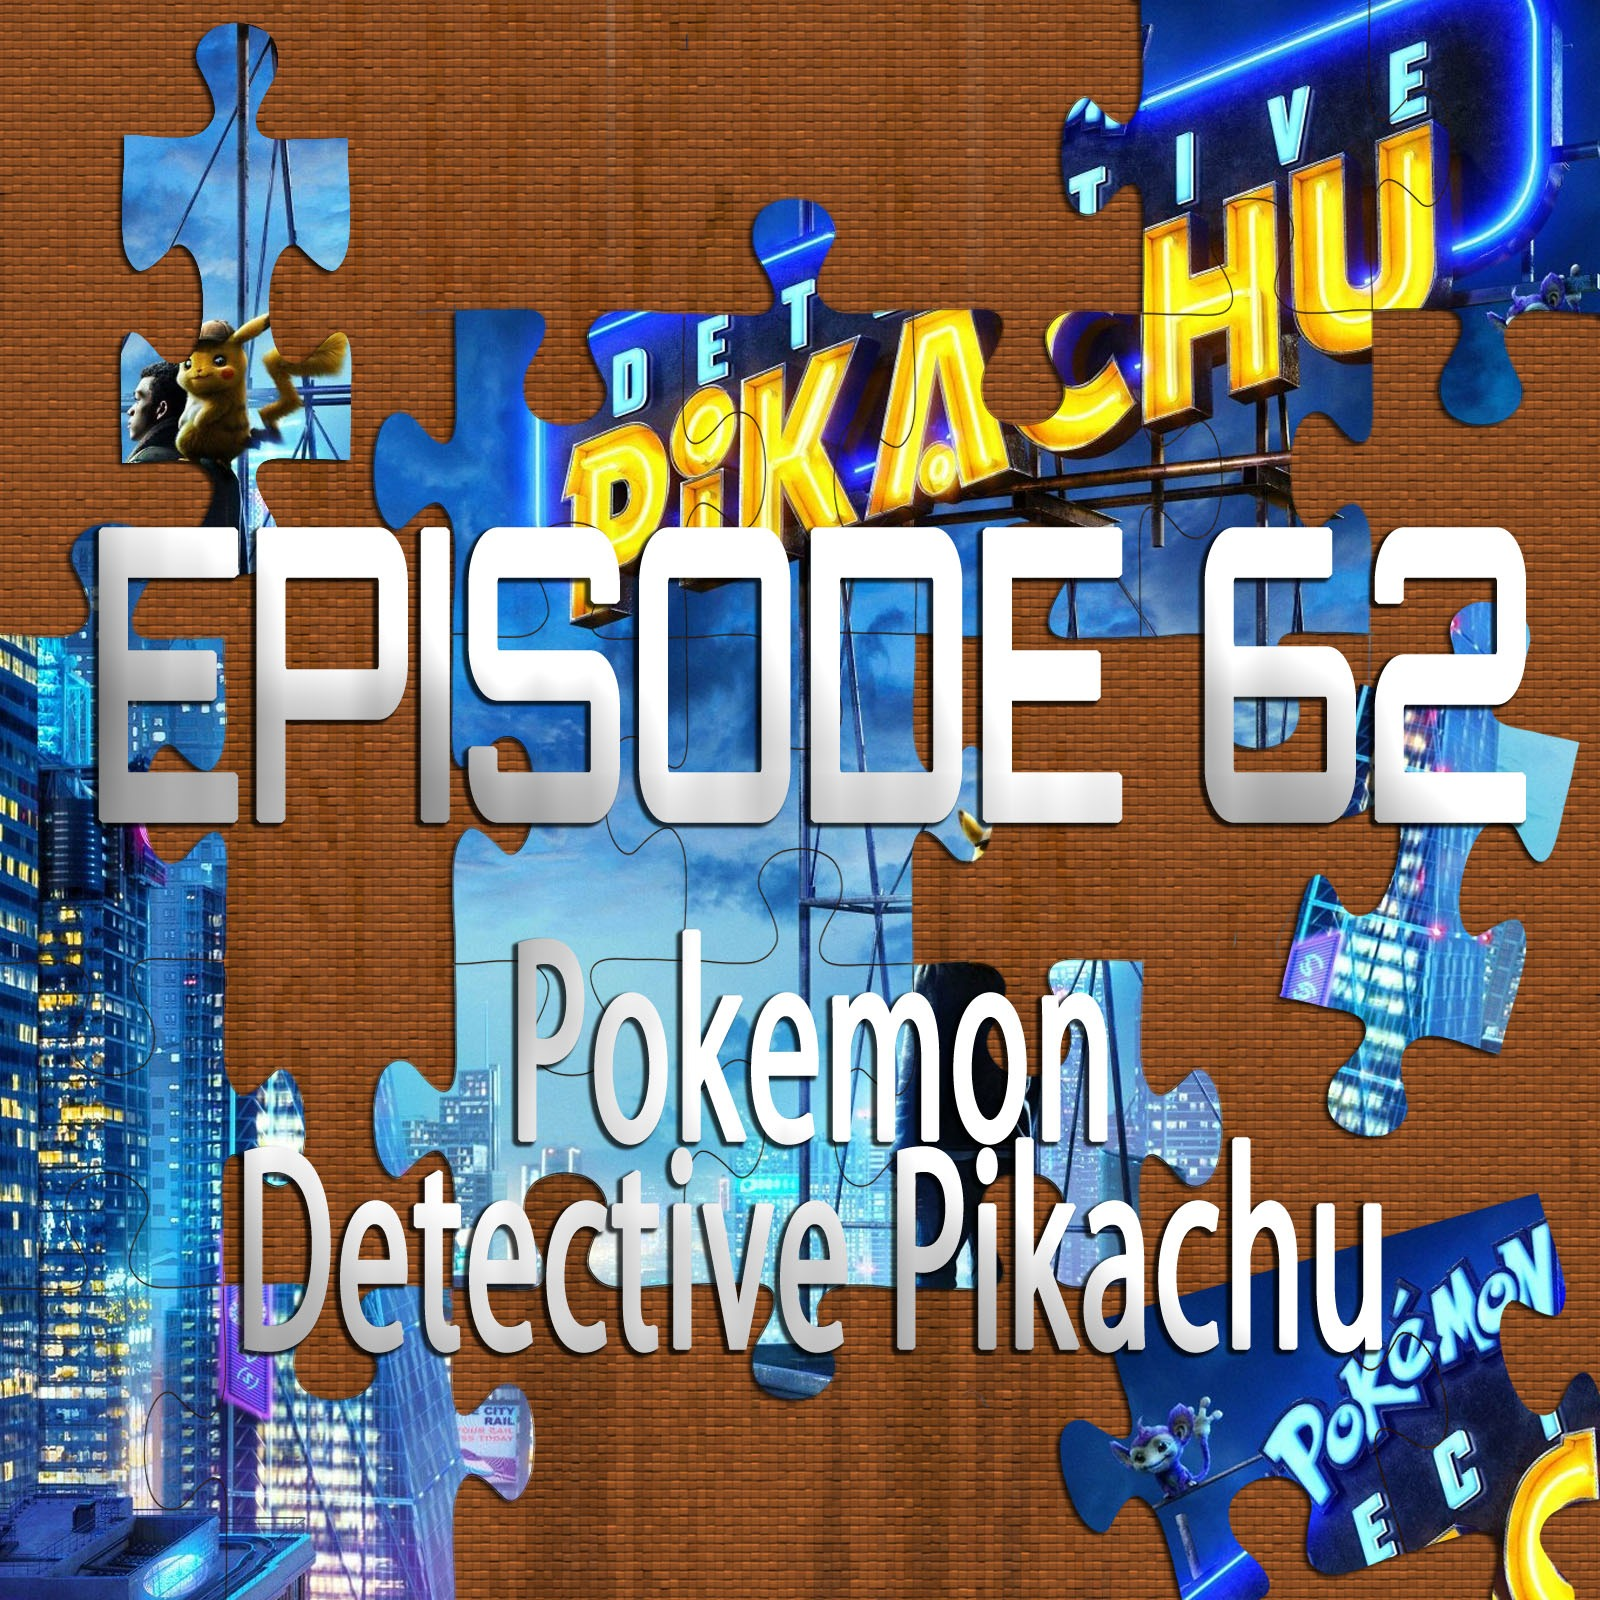 Pokemon: Detective Pikachu (Featuring Ryan Daugherty)